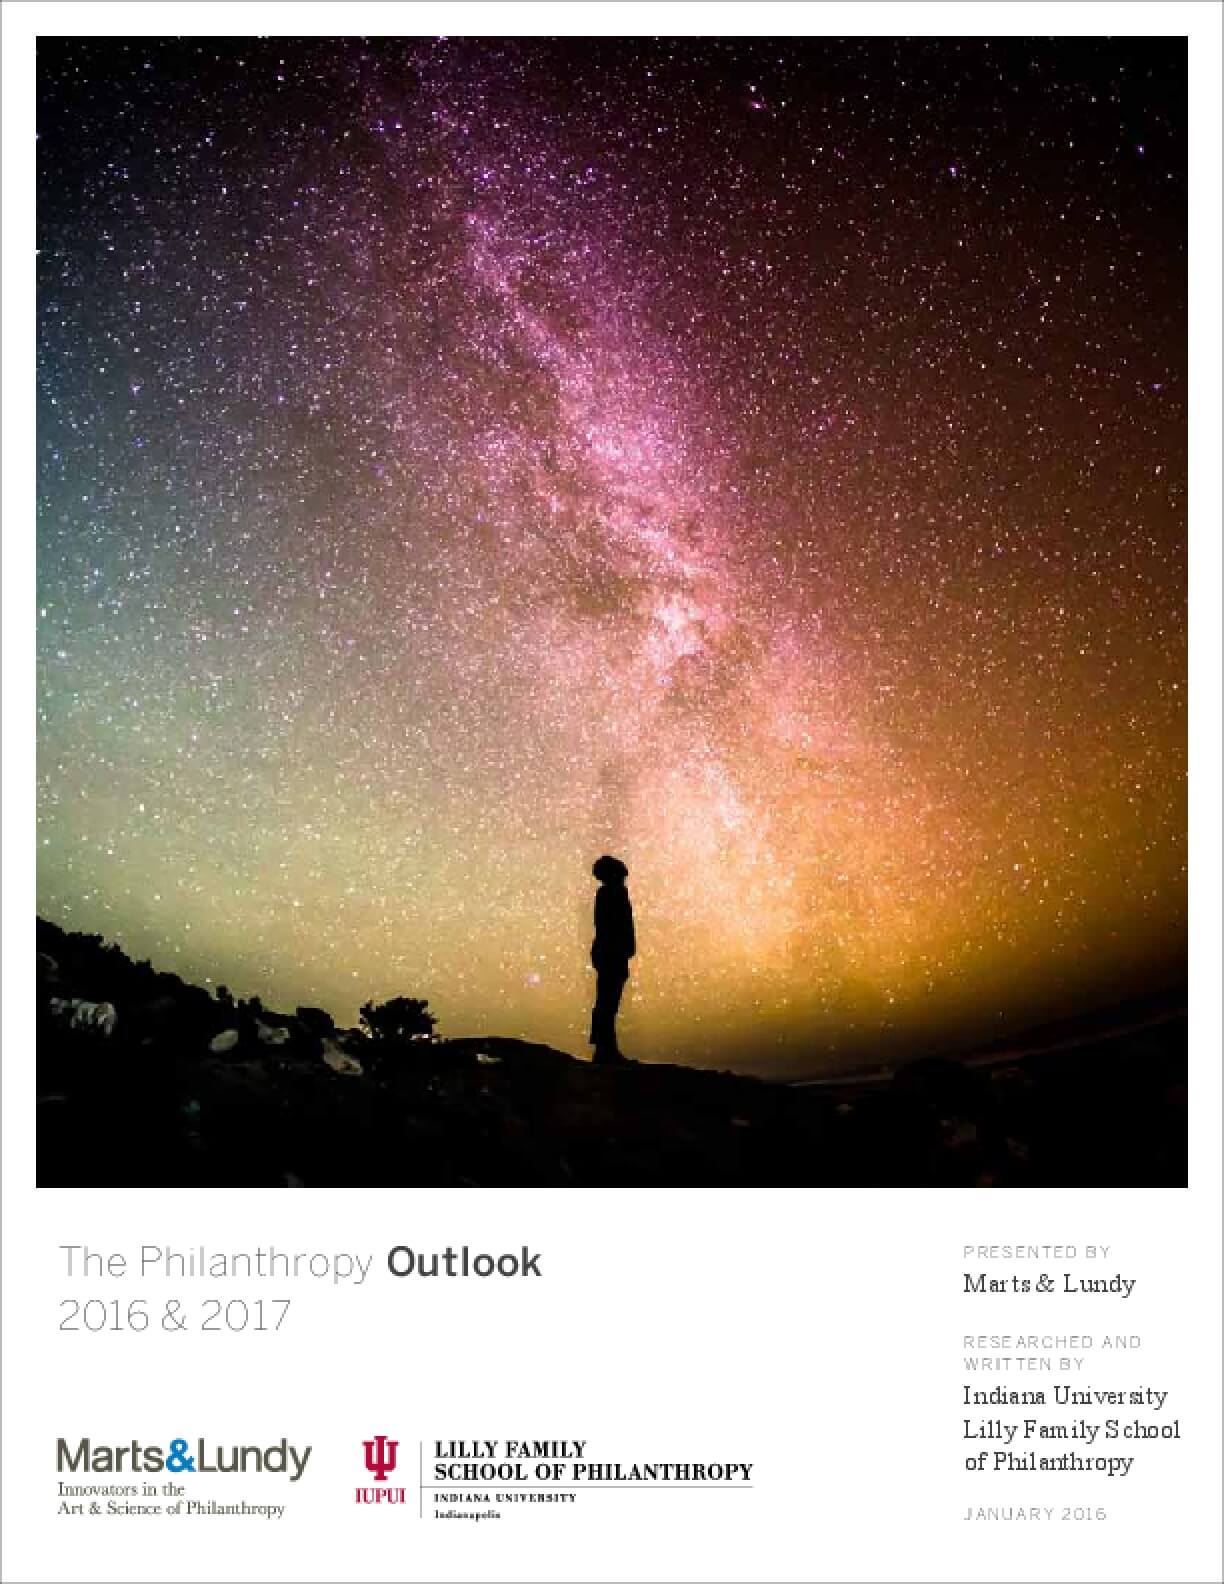 The Philanthropy Outlook 2016 and 2017